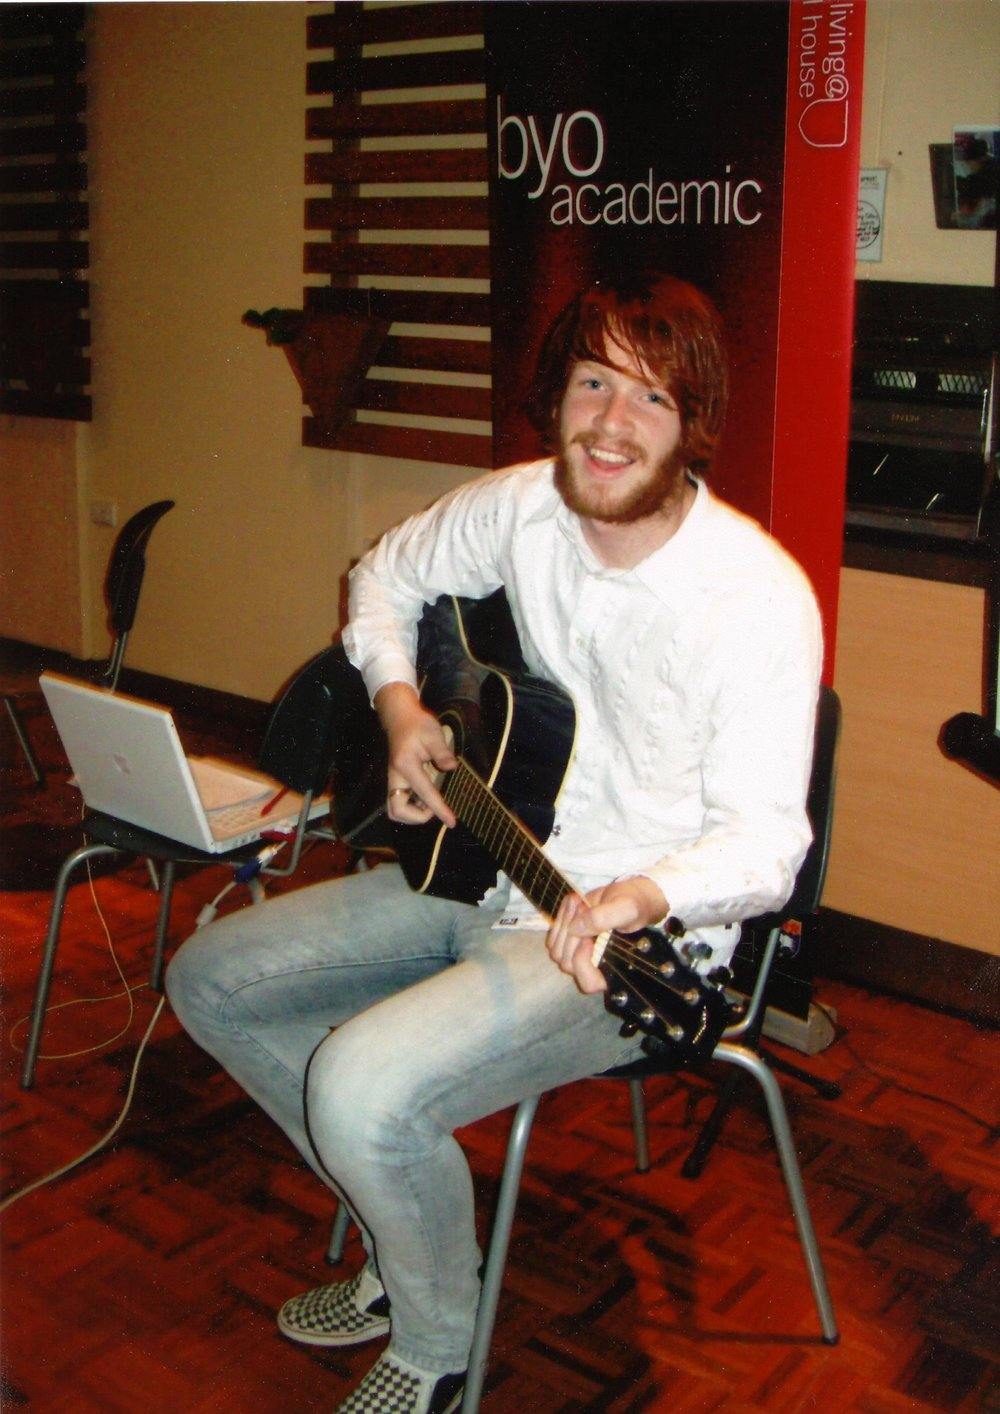 Playing guitar at an event at uni back in 2009